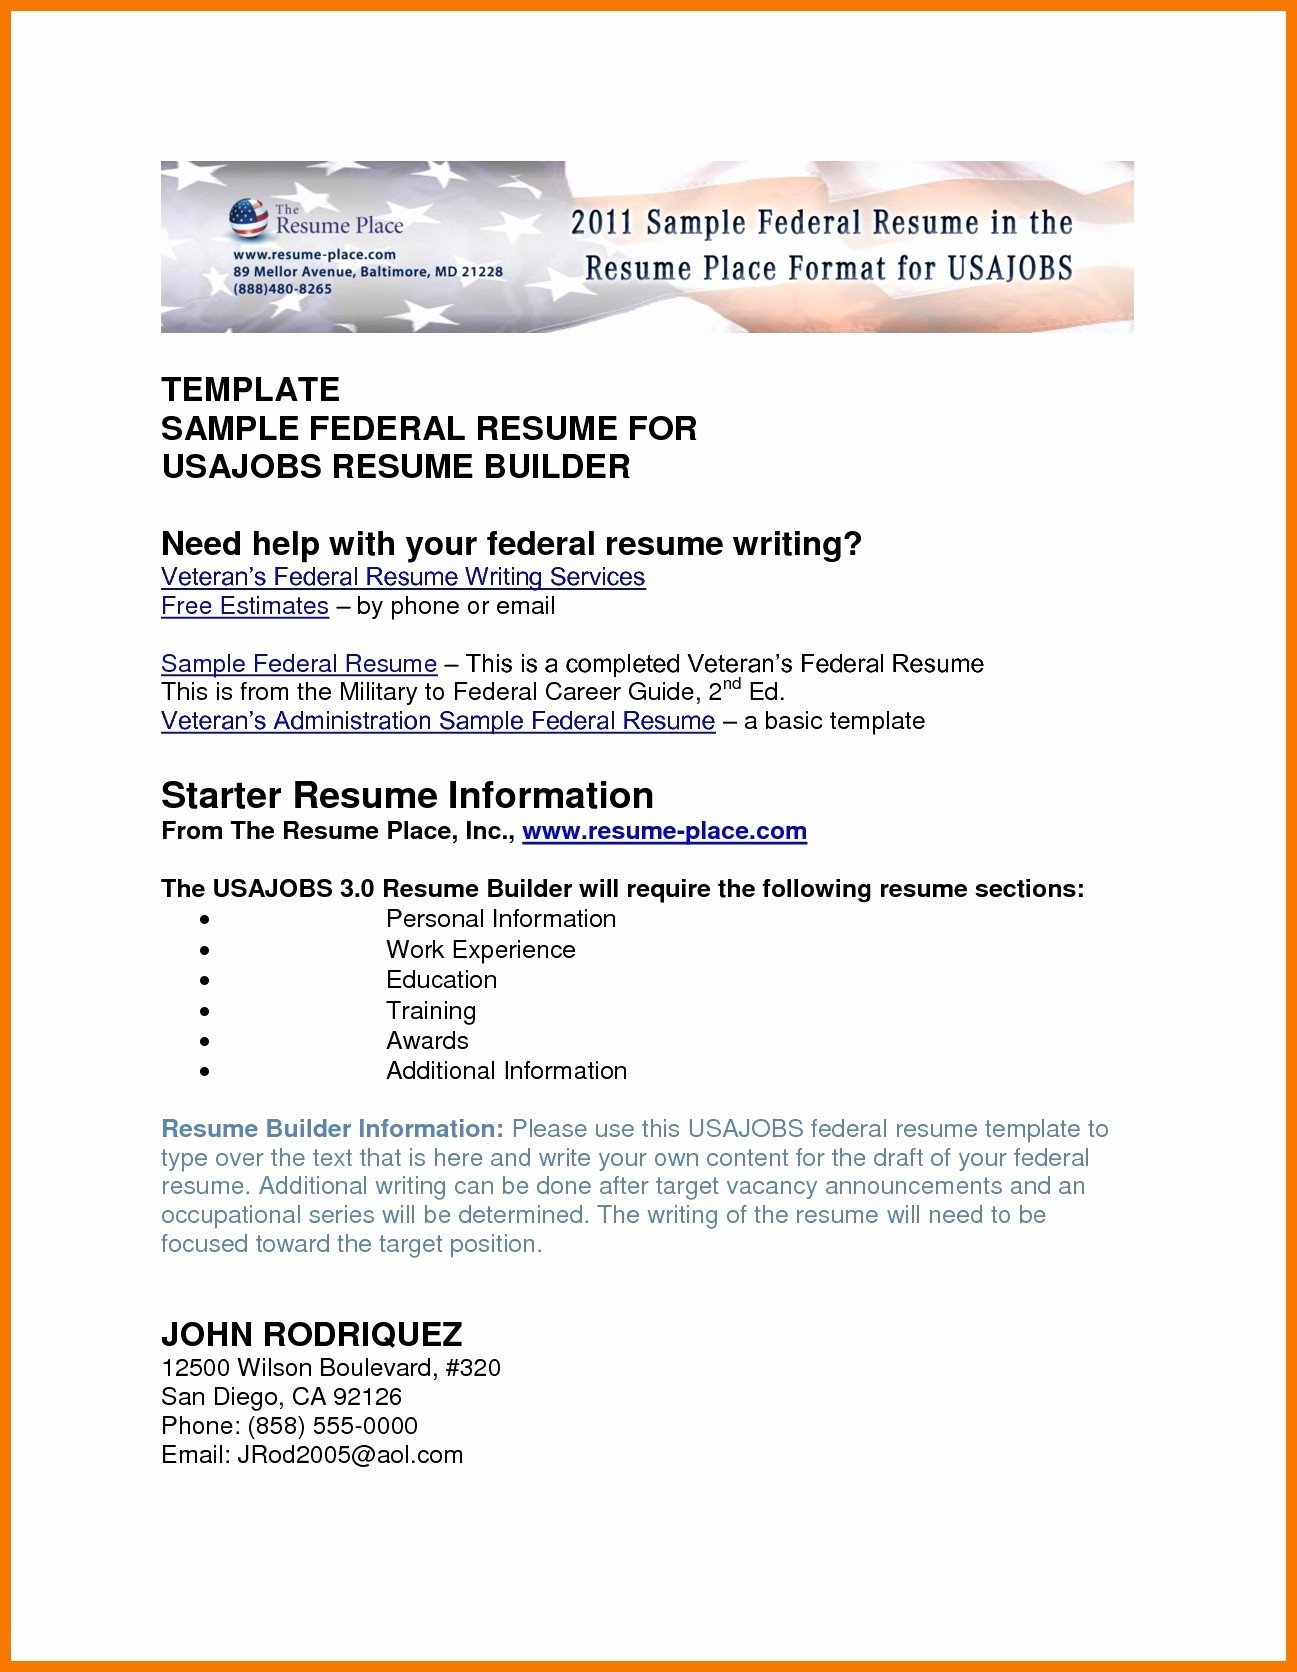 Federal Resume format - Usajobs Resume Builder Lovely Federal Resume Tips Img S I Pinimg